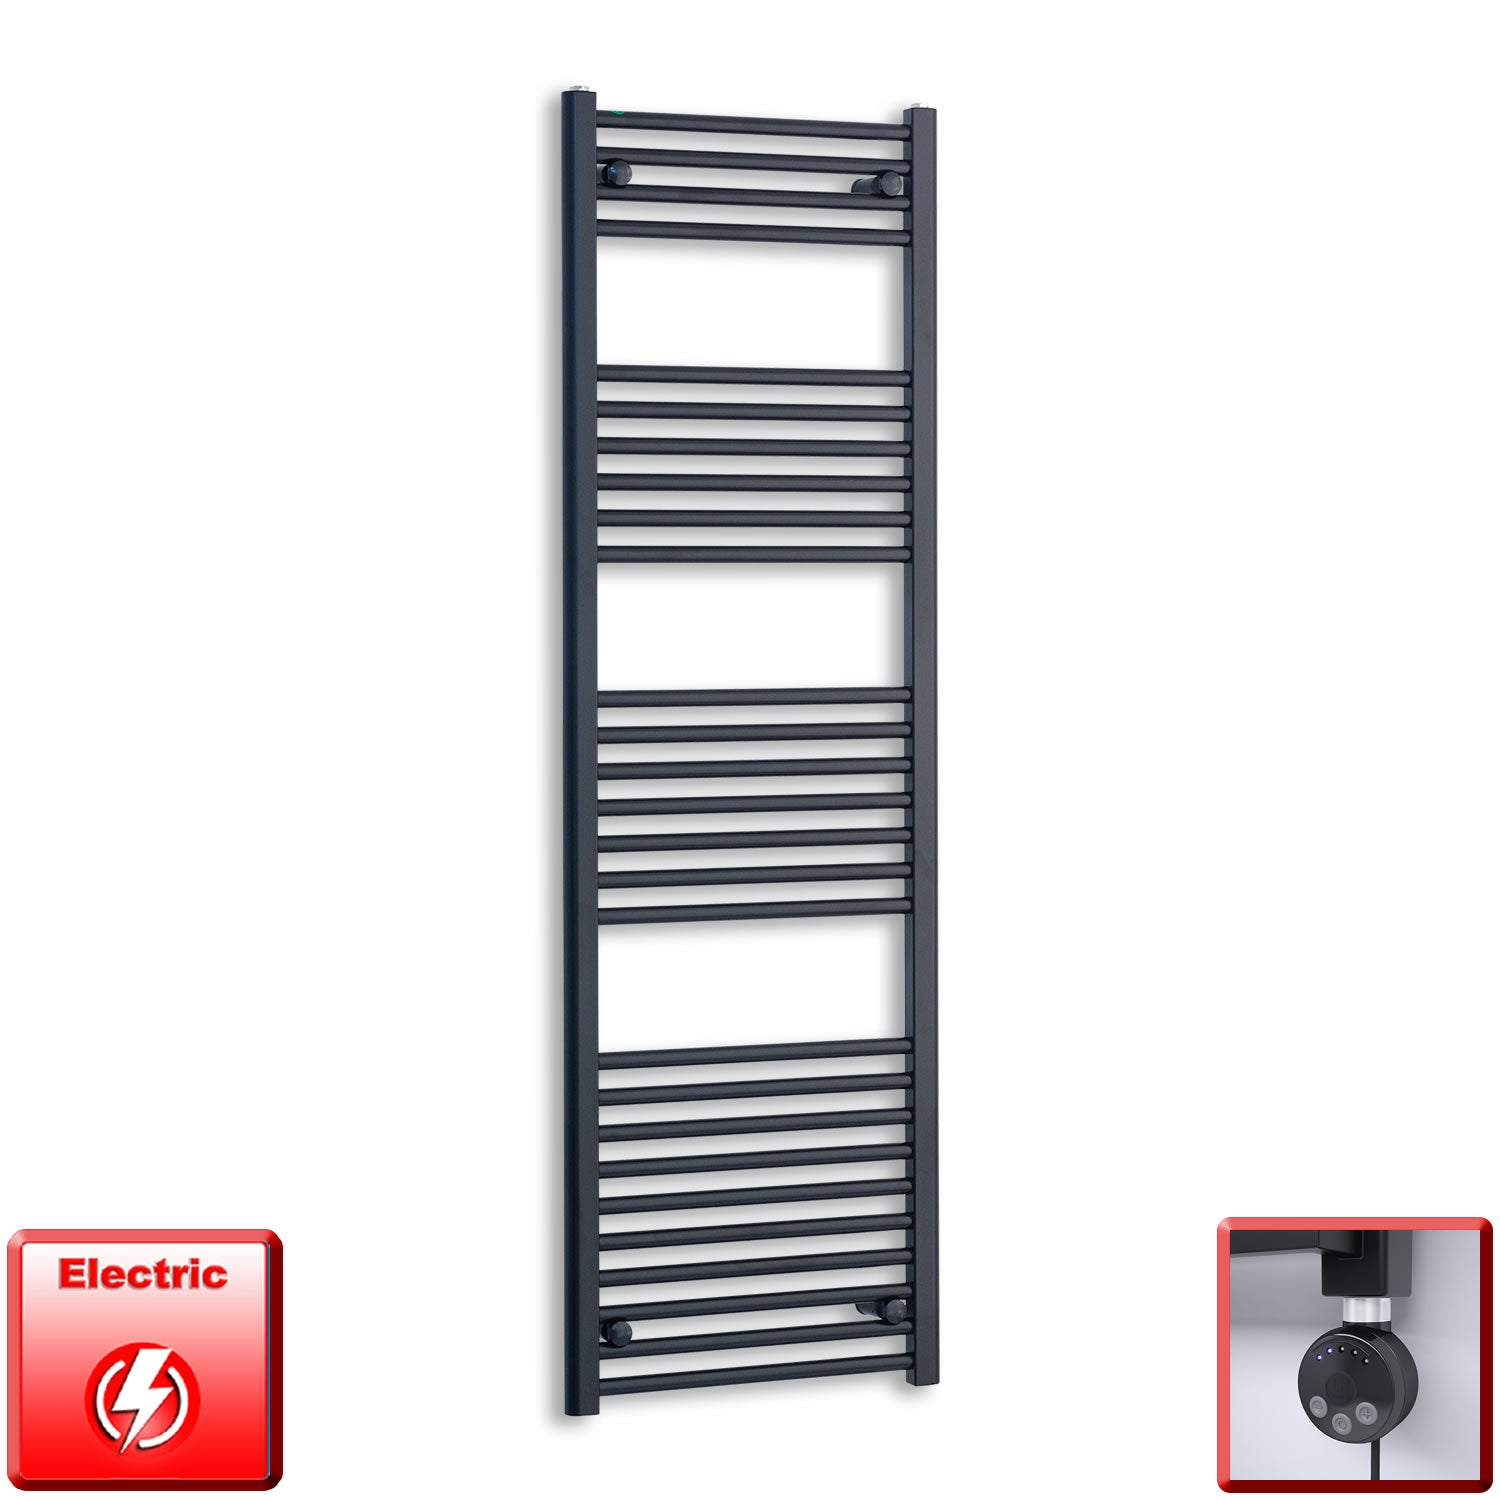 500mm Wide 1600mm High Pre-Filled Black Electric Towel Rail Radiator With Thermostatic MEG Element